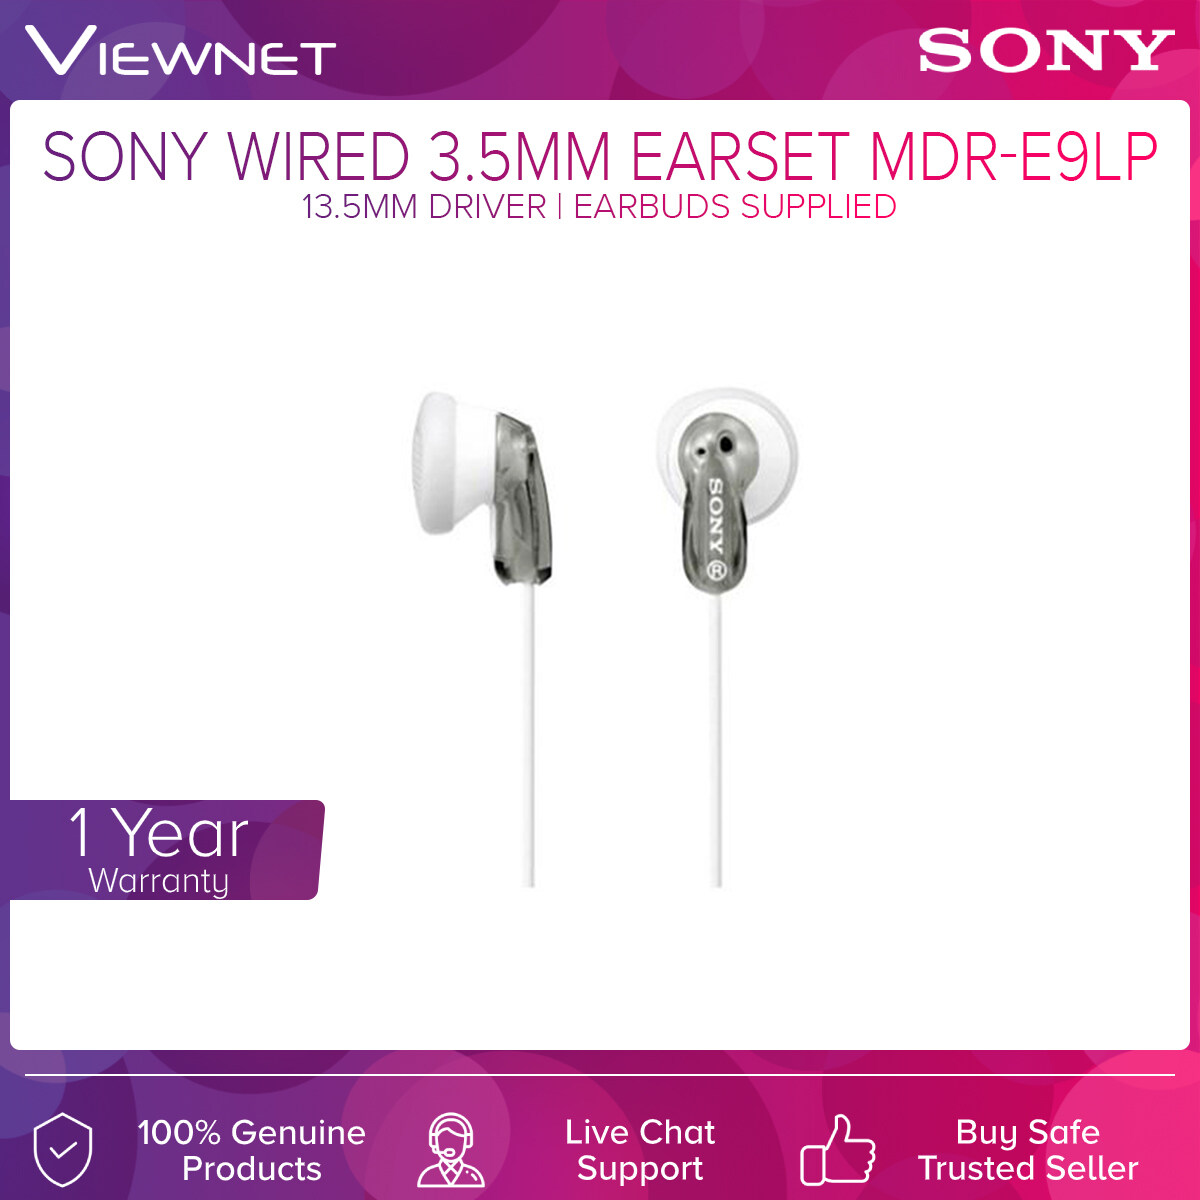 Sony Wired 3.5mm Earset MDR-E9LP with 13.5mm Driver, Earbuds Supplied, 1.2 Length Cable